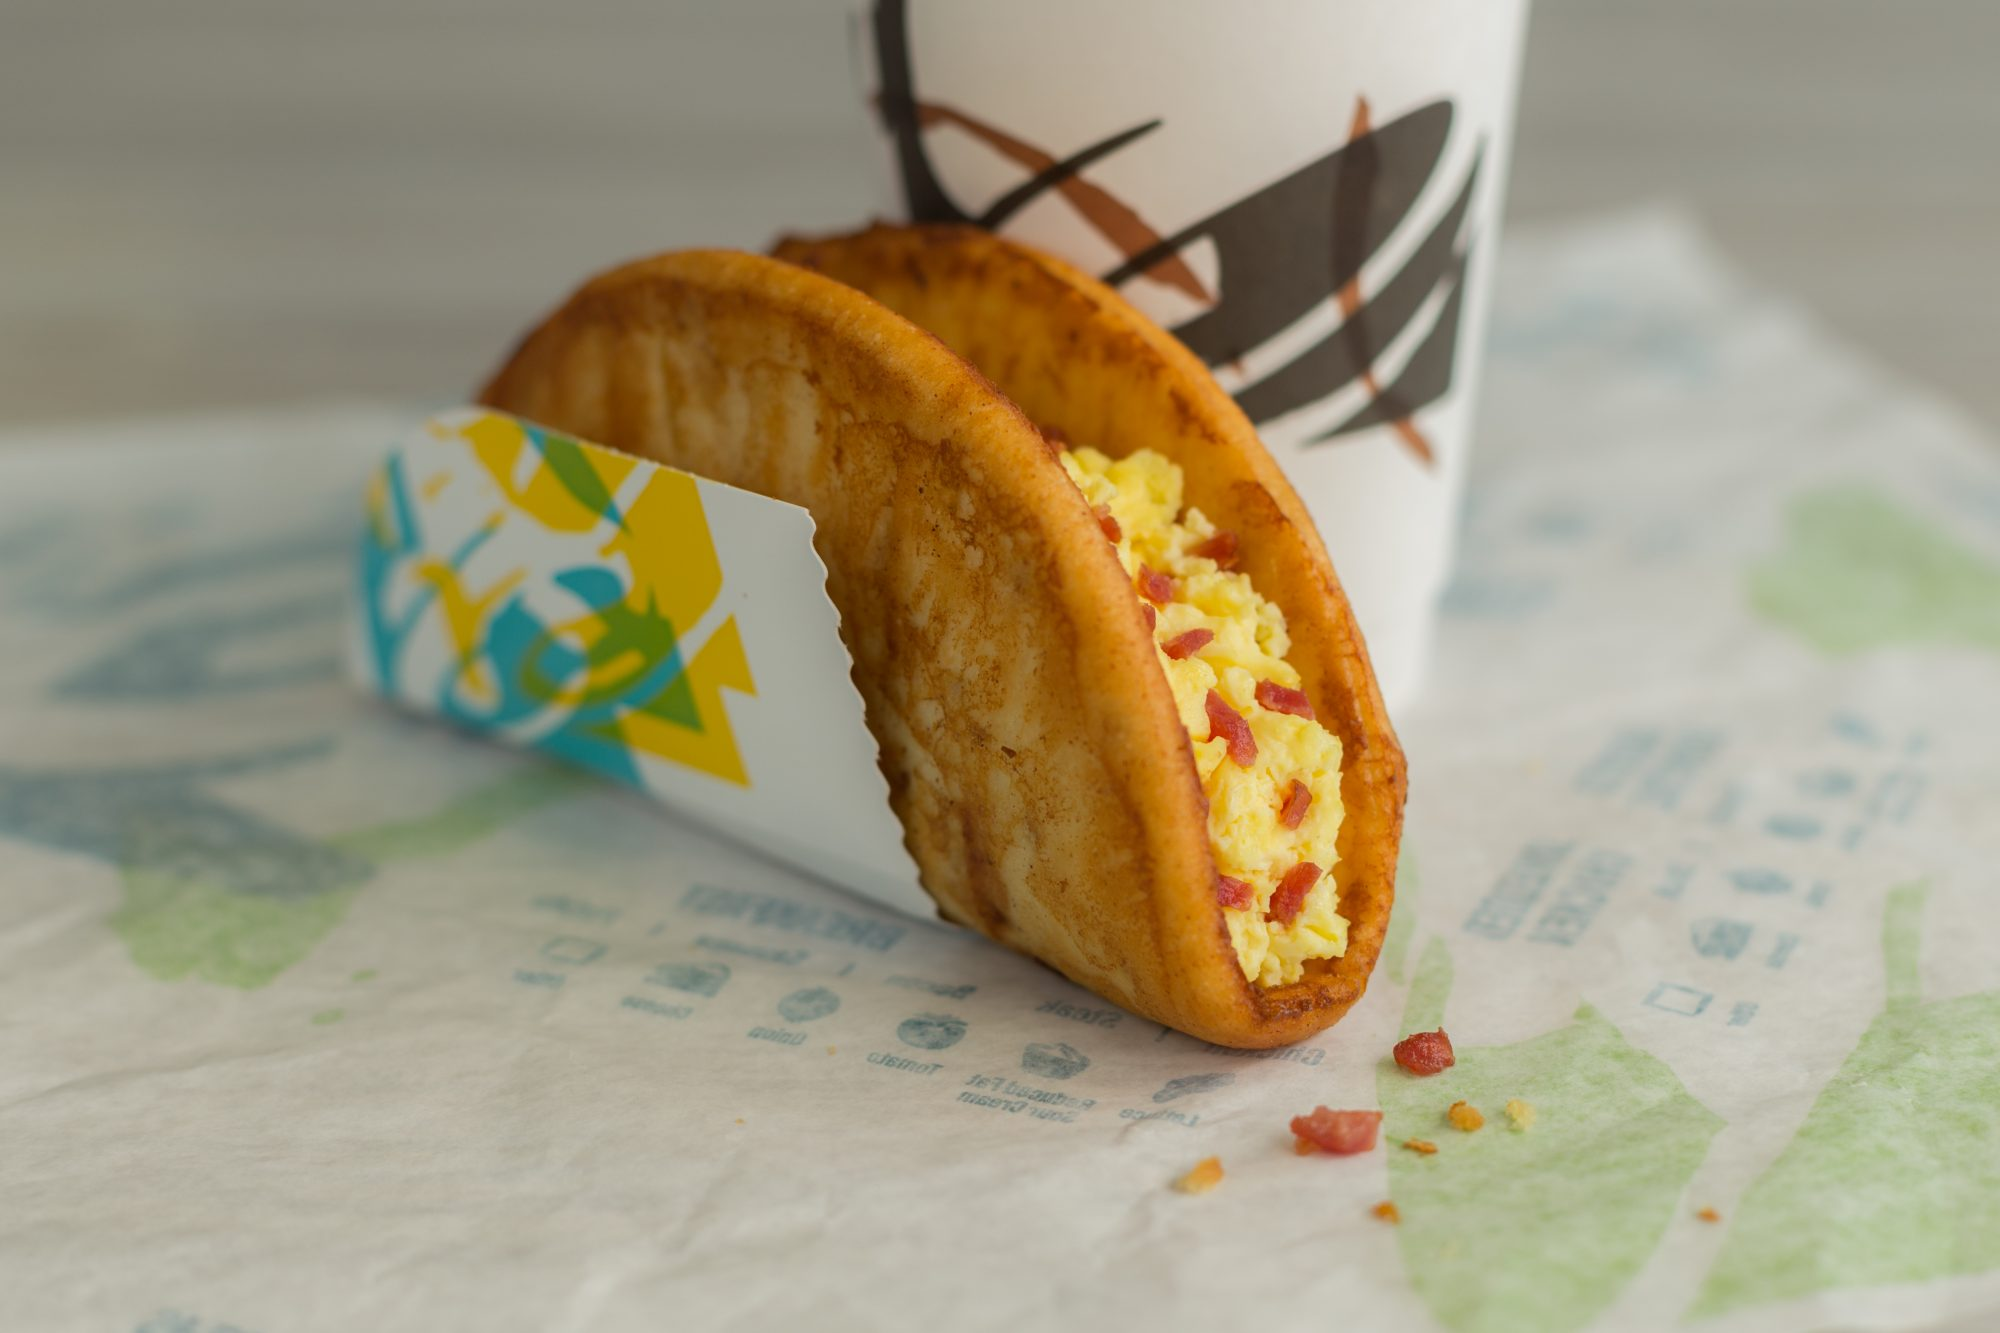 FRENCH TOAST CHALUPA